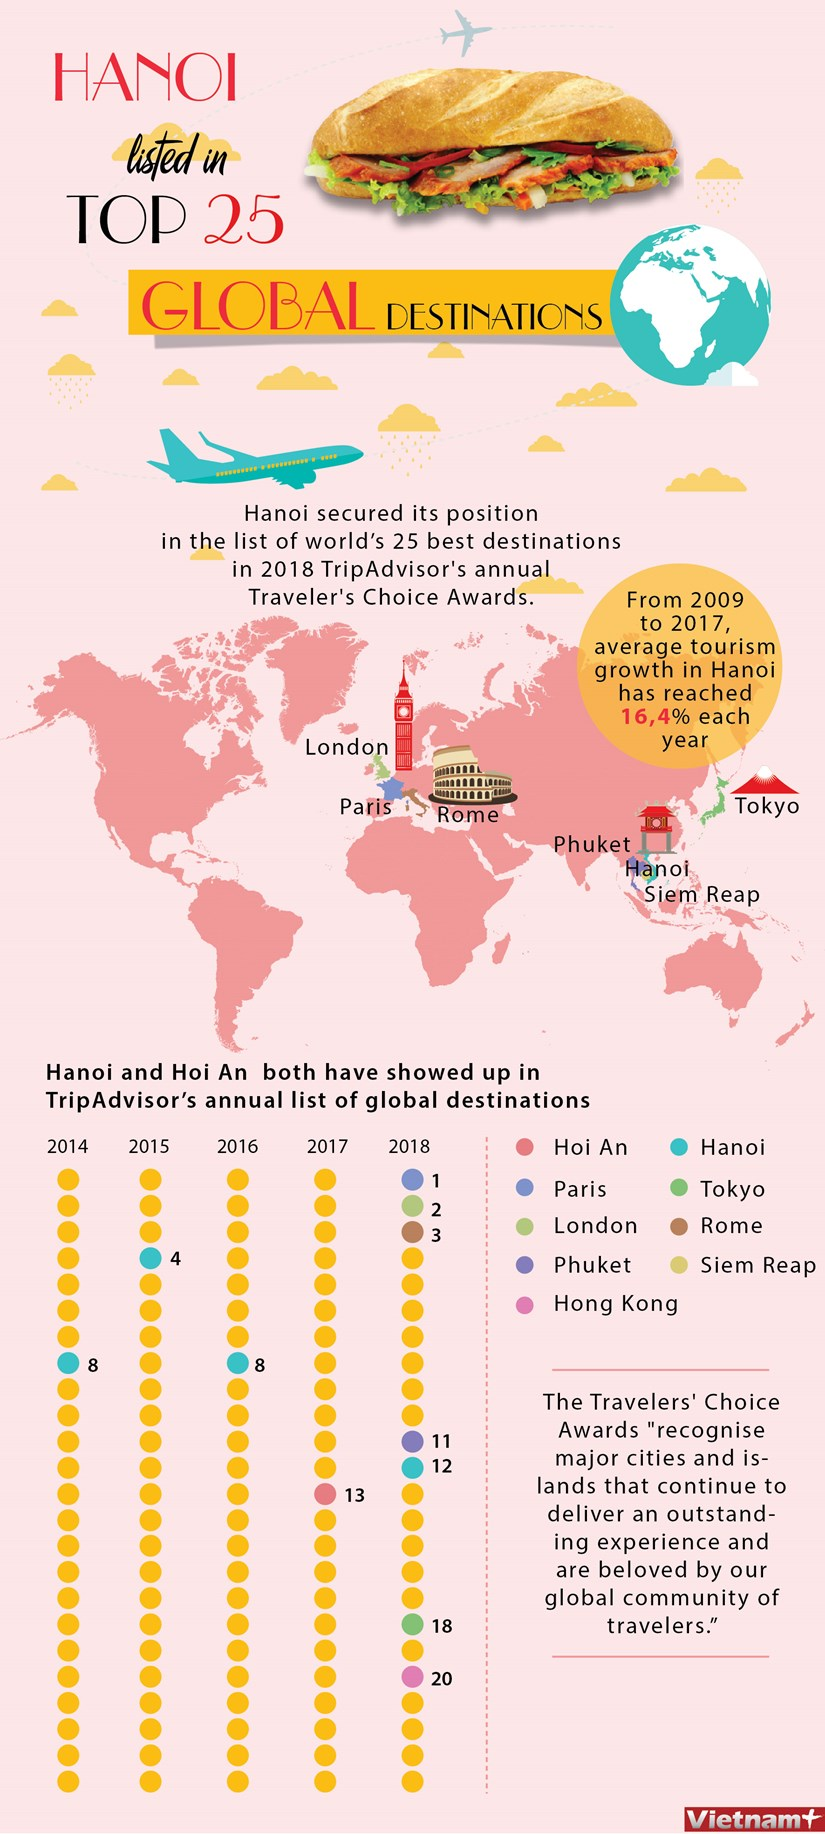 Hanoi listed in Top 25 Global Destinations hinh anh 1